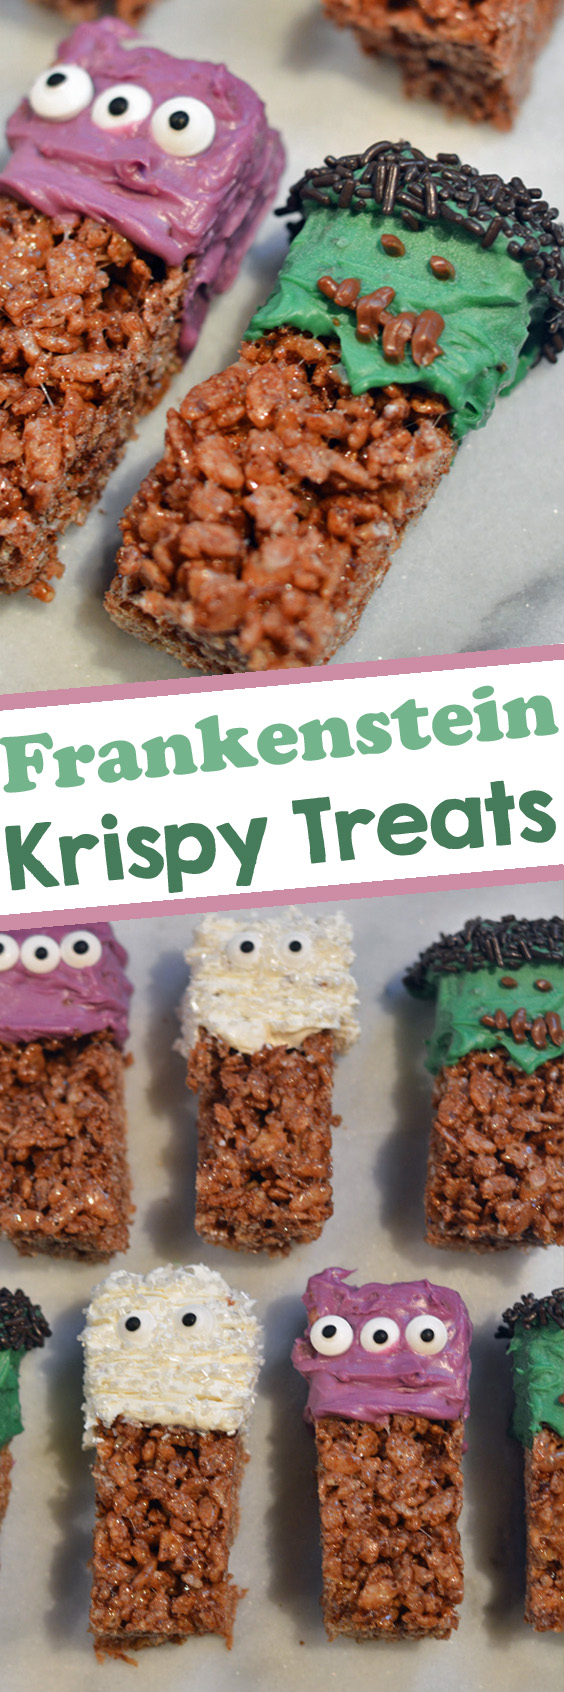 Easy Frankenstein Krispy Treats for Halloween